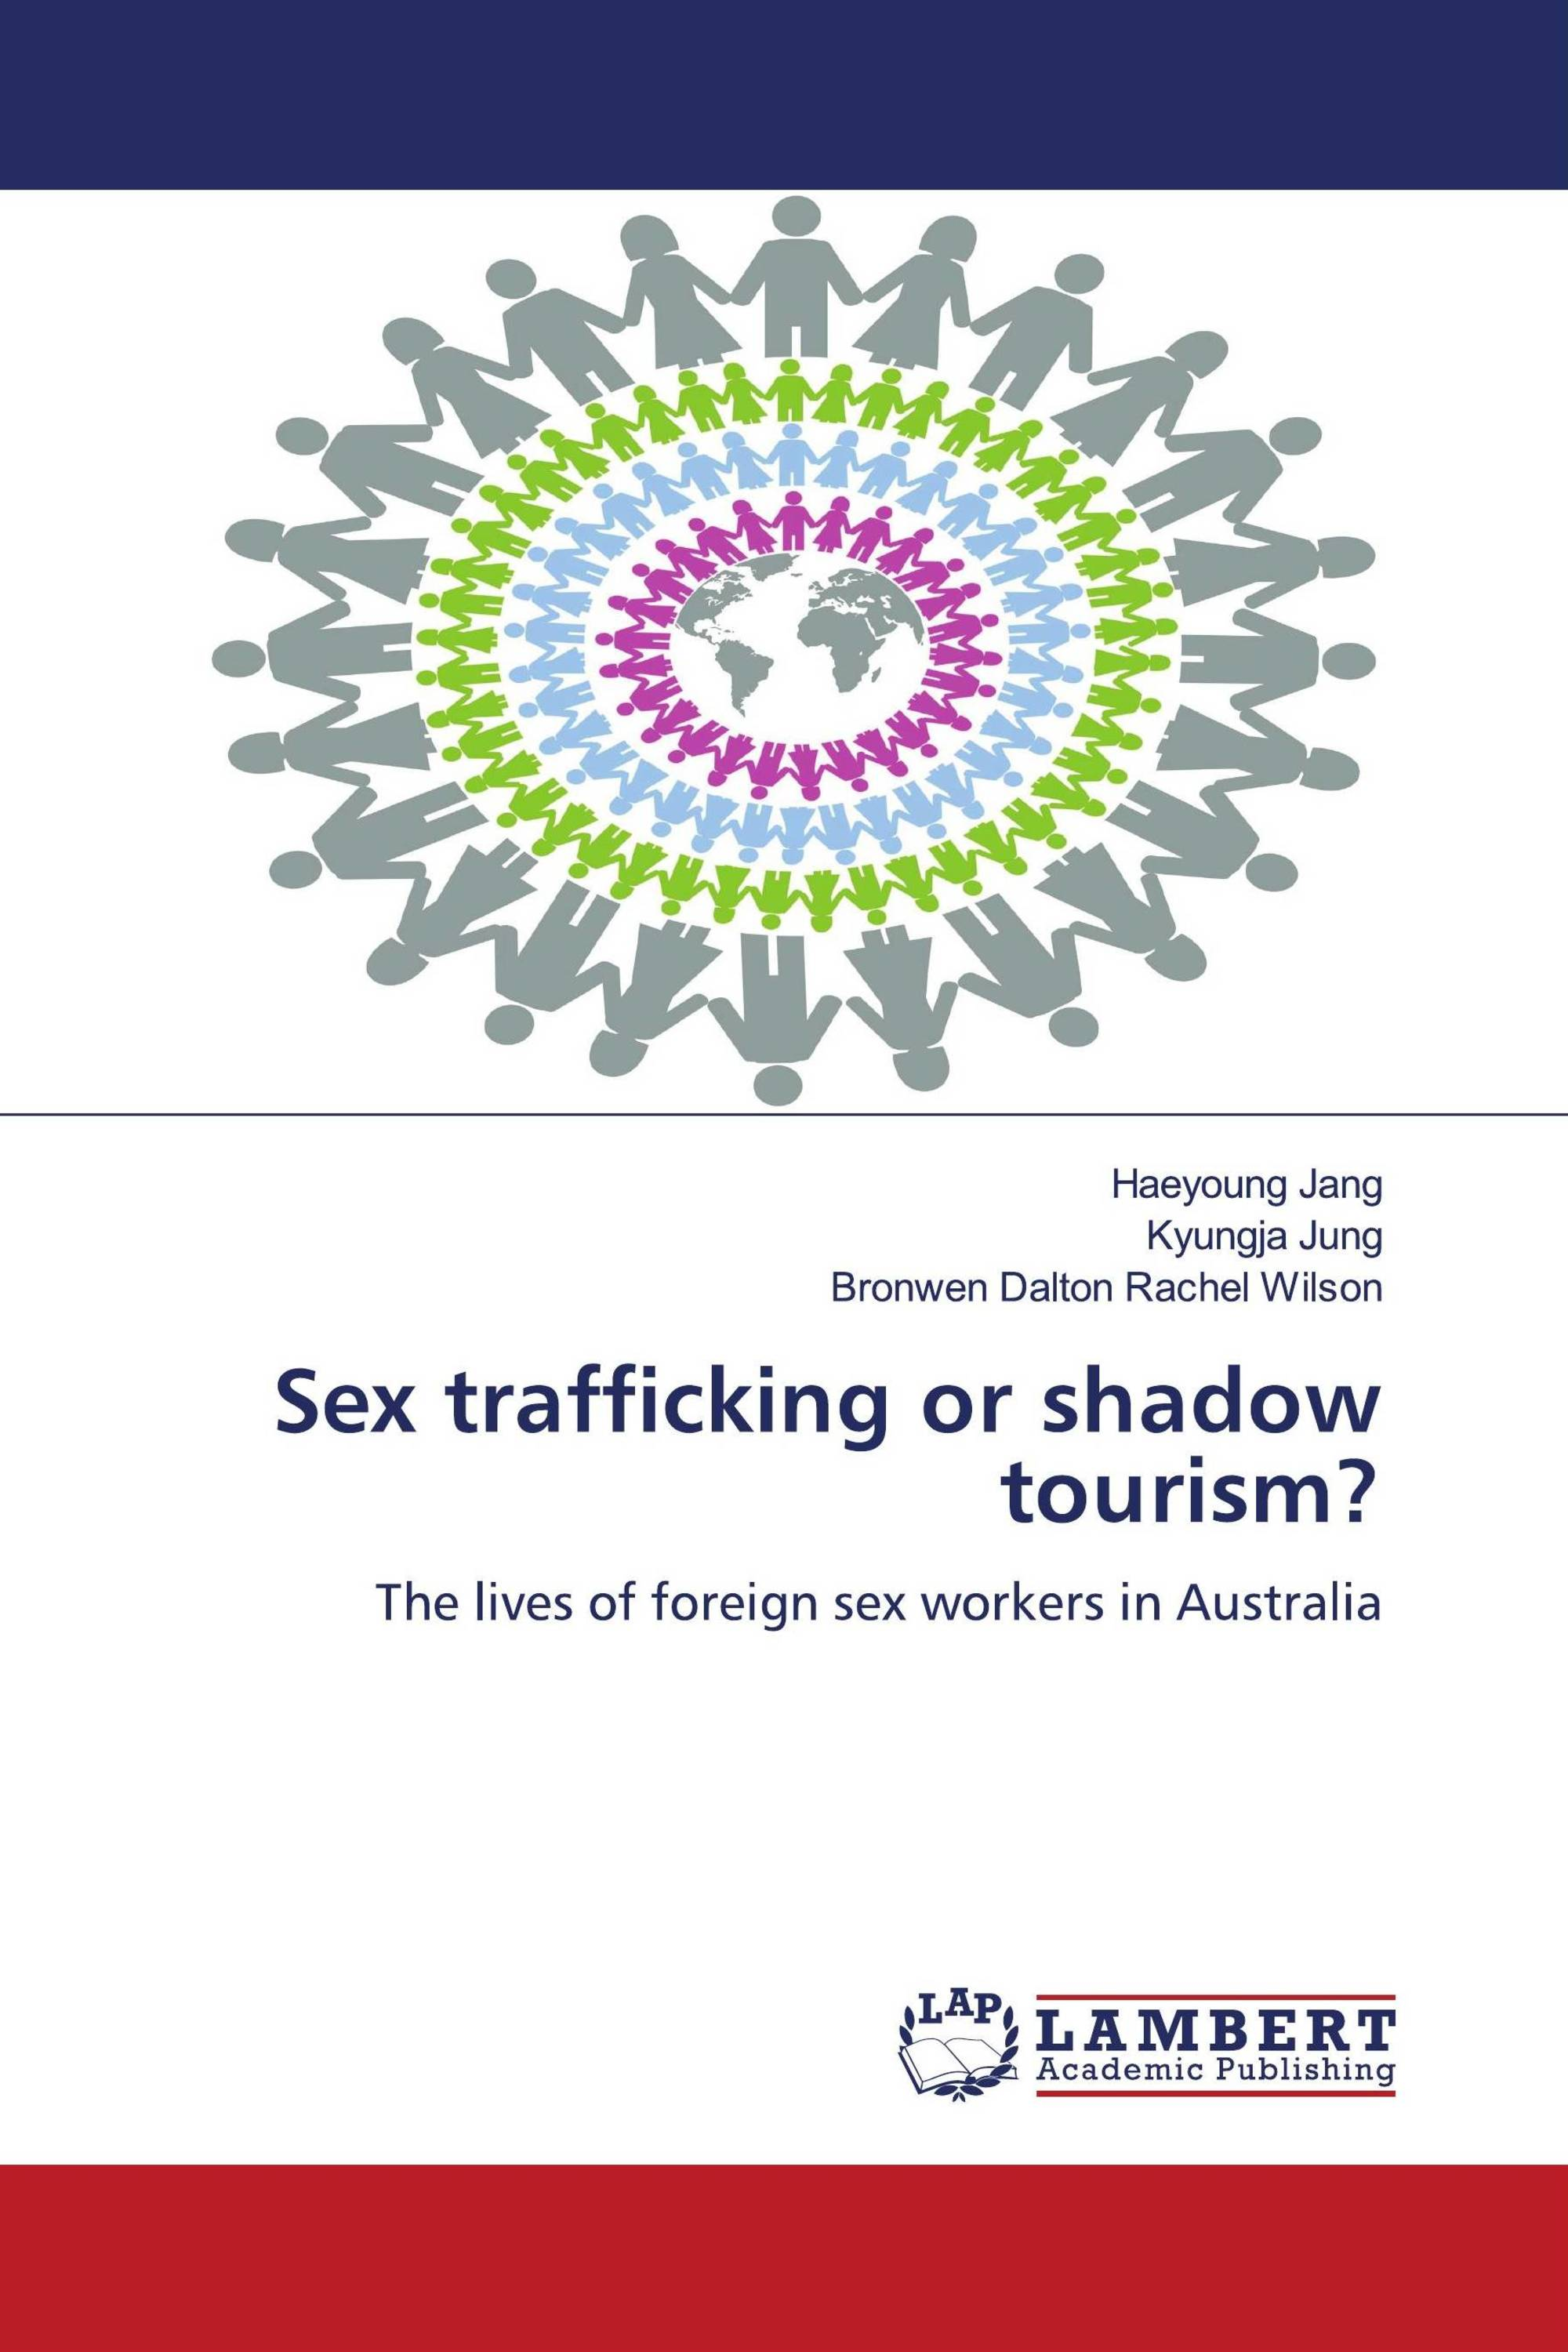 Sex trafficking or shadow tourism?